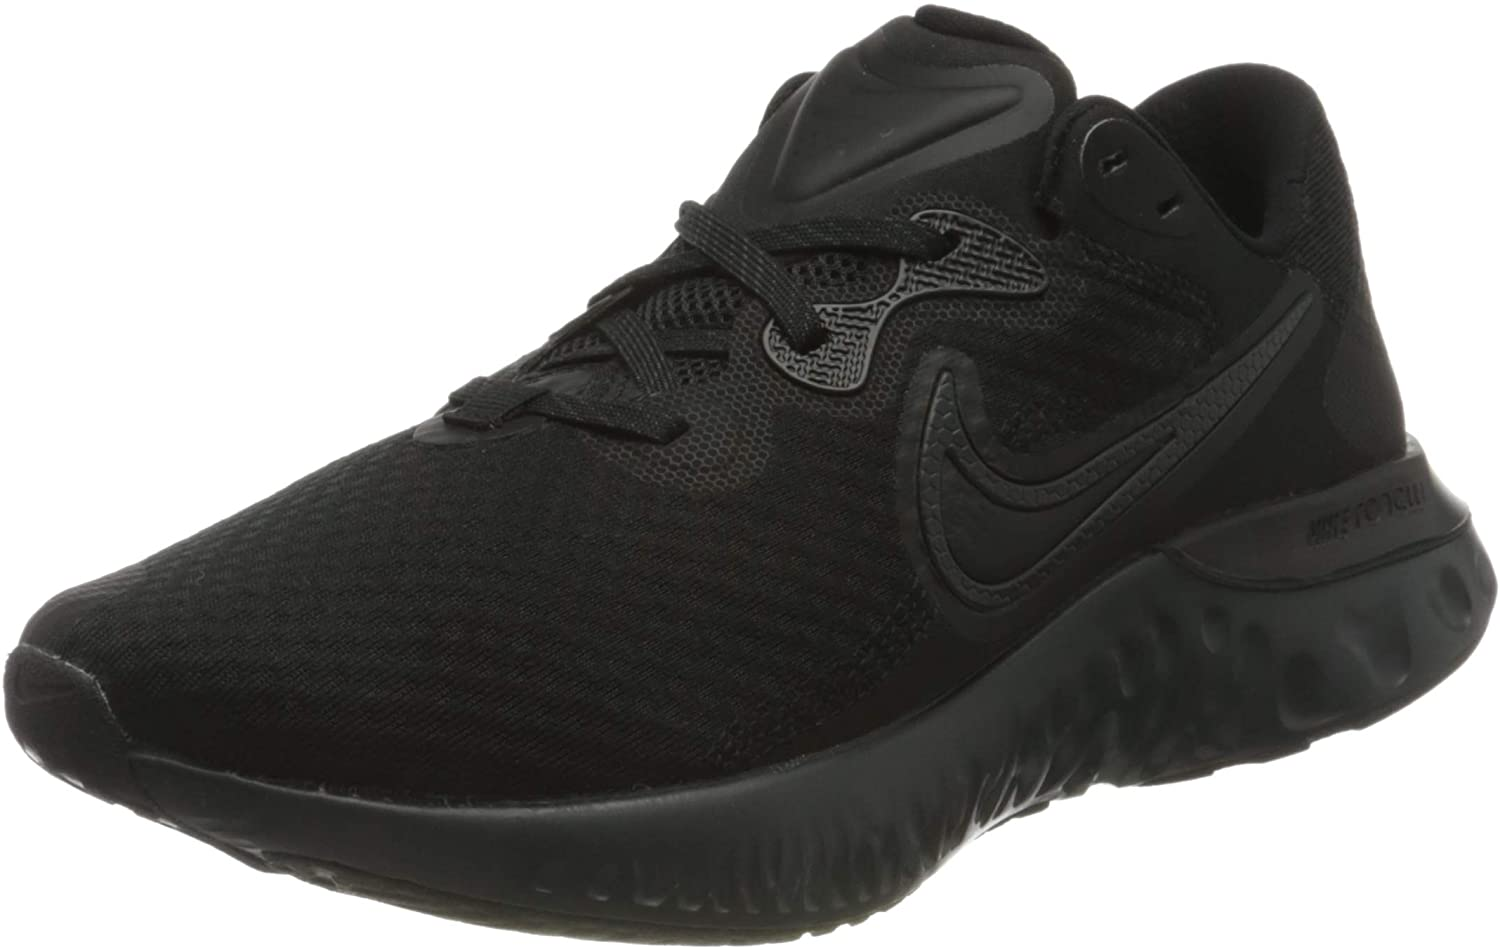 Nike Max 41% OFF Men's Mid-Top Shoe Running Trainers Excellence